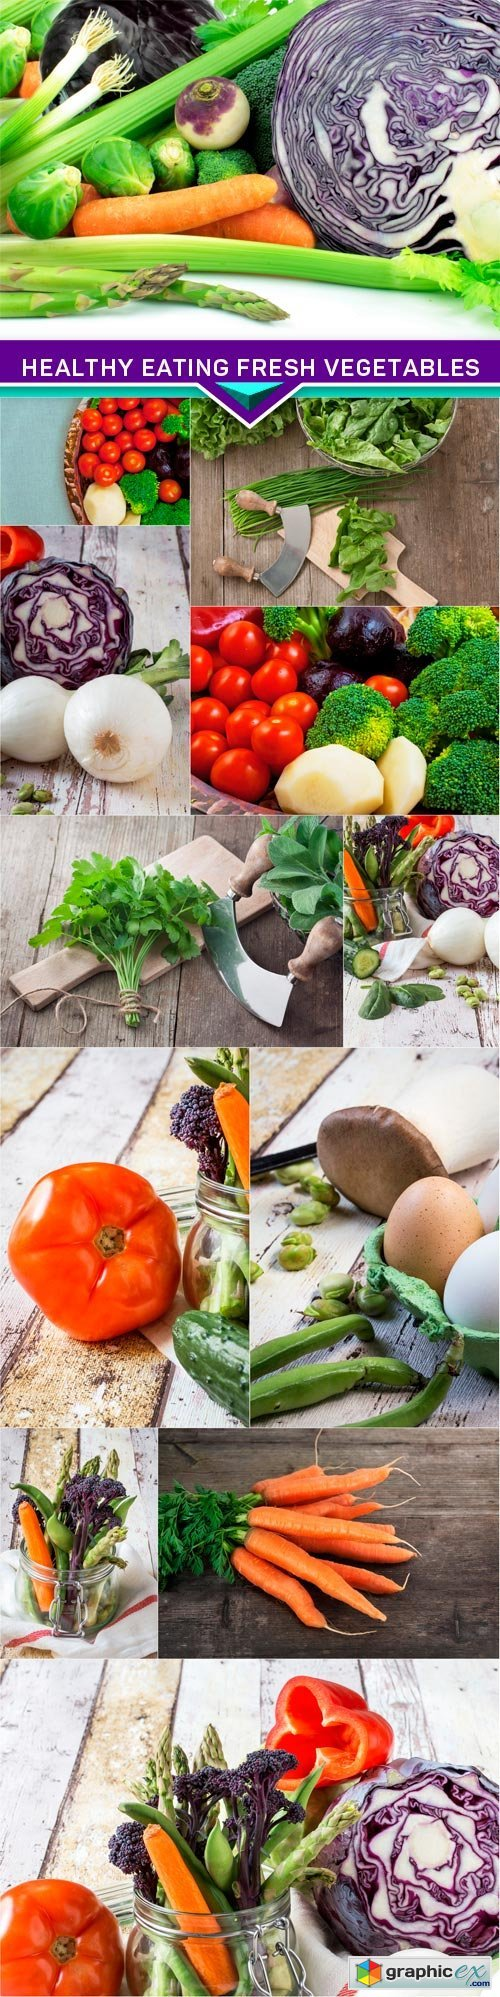 Healthy eating fresh vegetables 12x JPEG